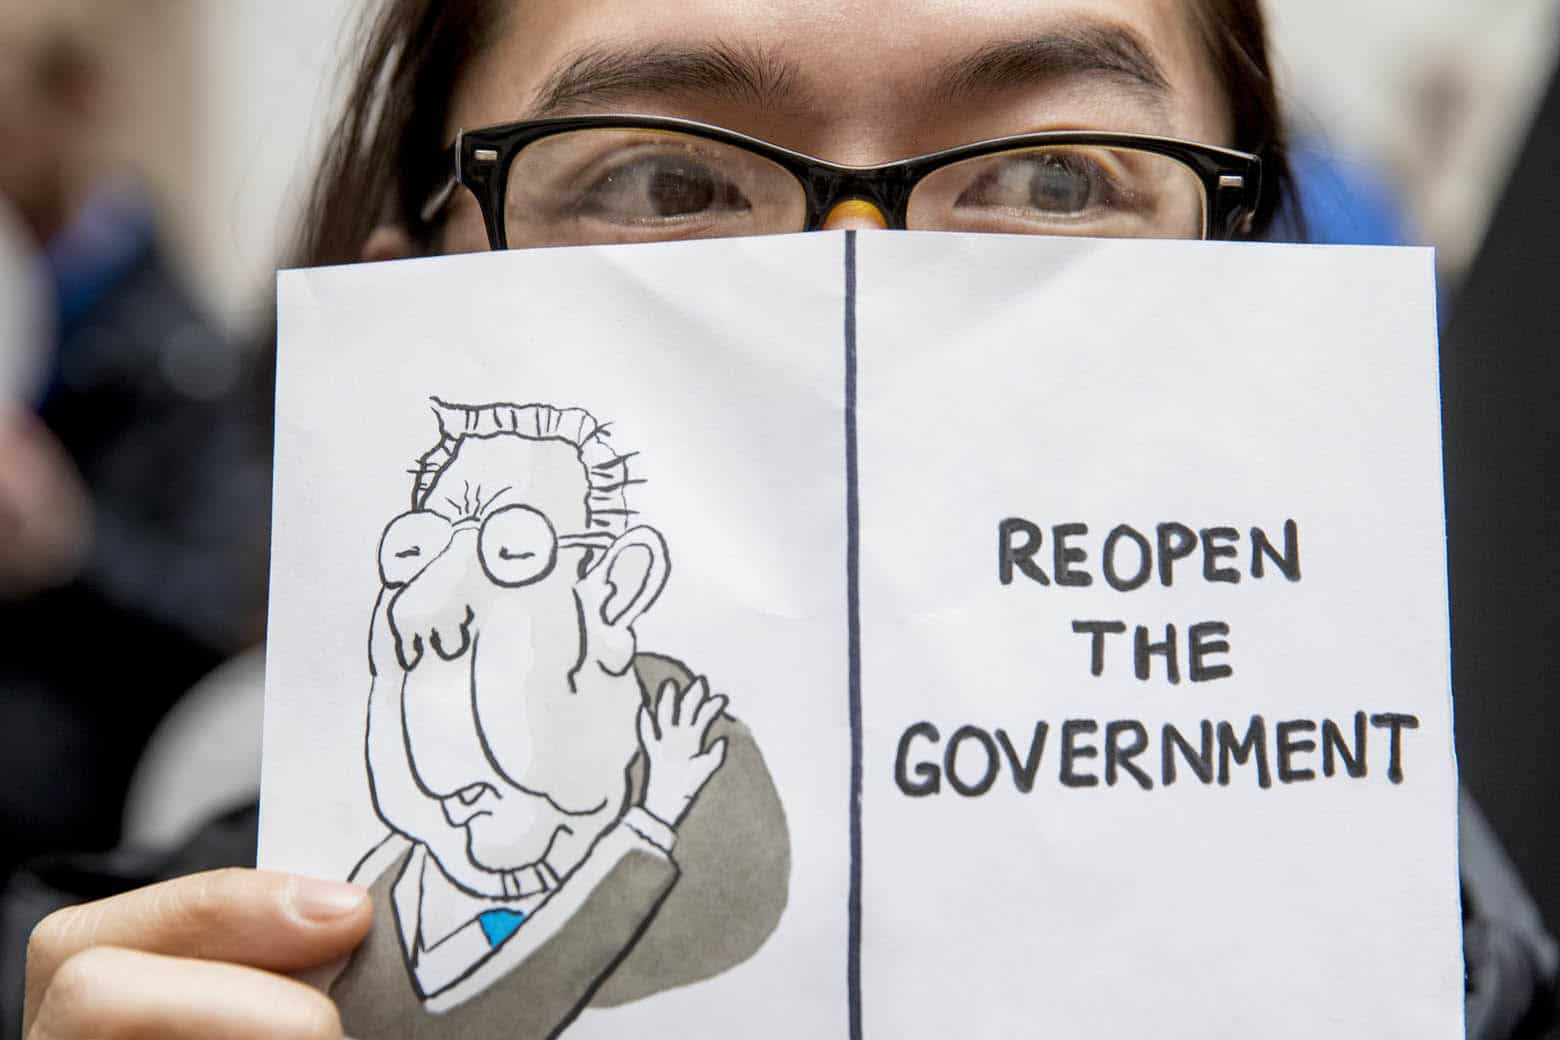 """A furloughed government worker affected by the shutdown holds a sign that reads """"Reopen the Government"""" during a silent protest against the ongoing partial government shutdown on Capitol Hill in Washington, Wednesday, Jan. 23, 2019. (AP Photo/Andrew Harnik)"""